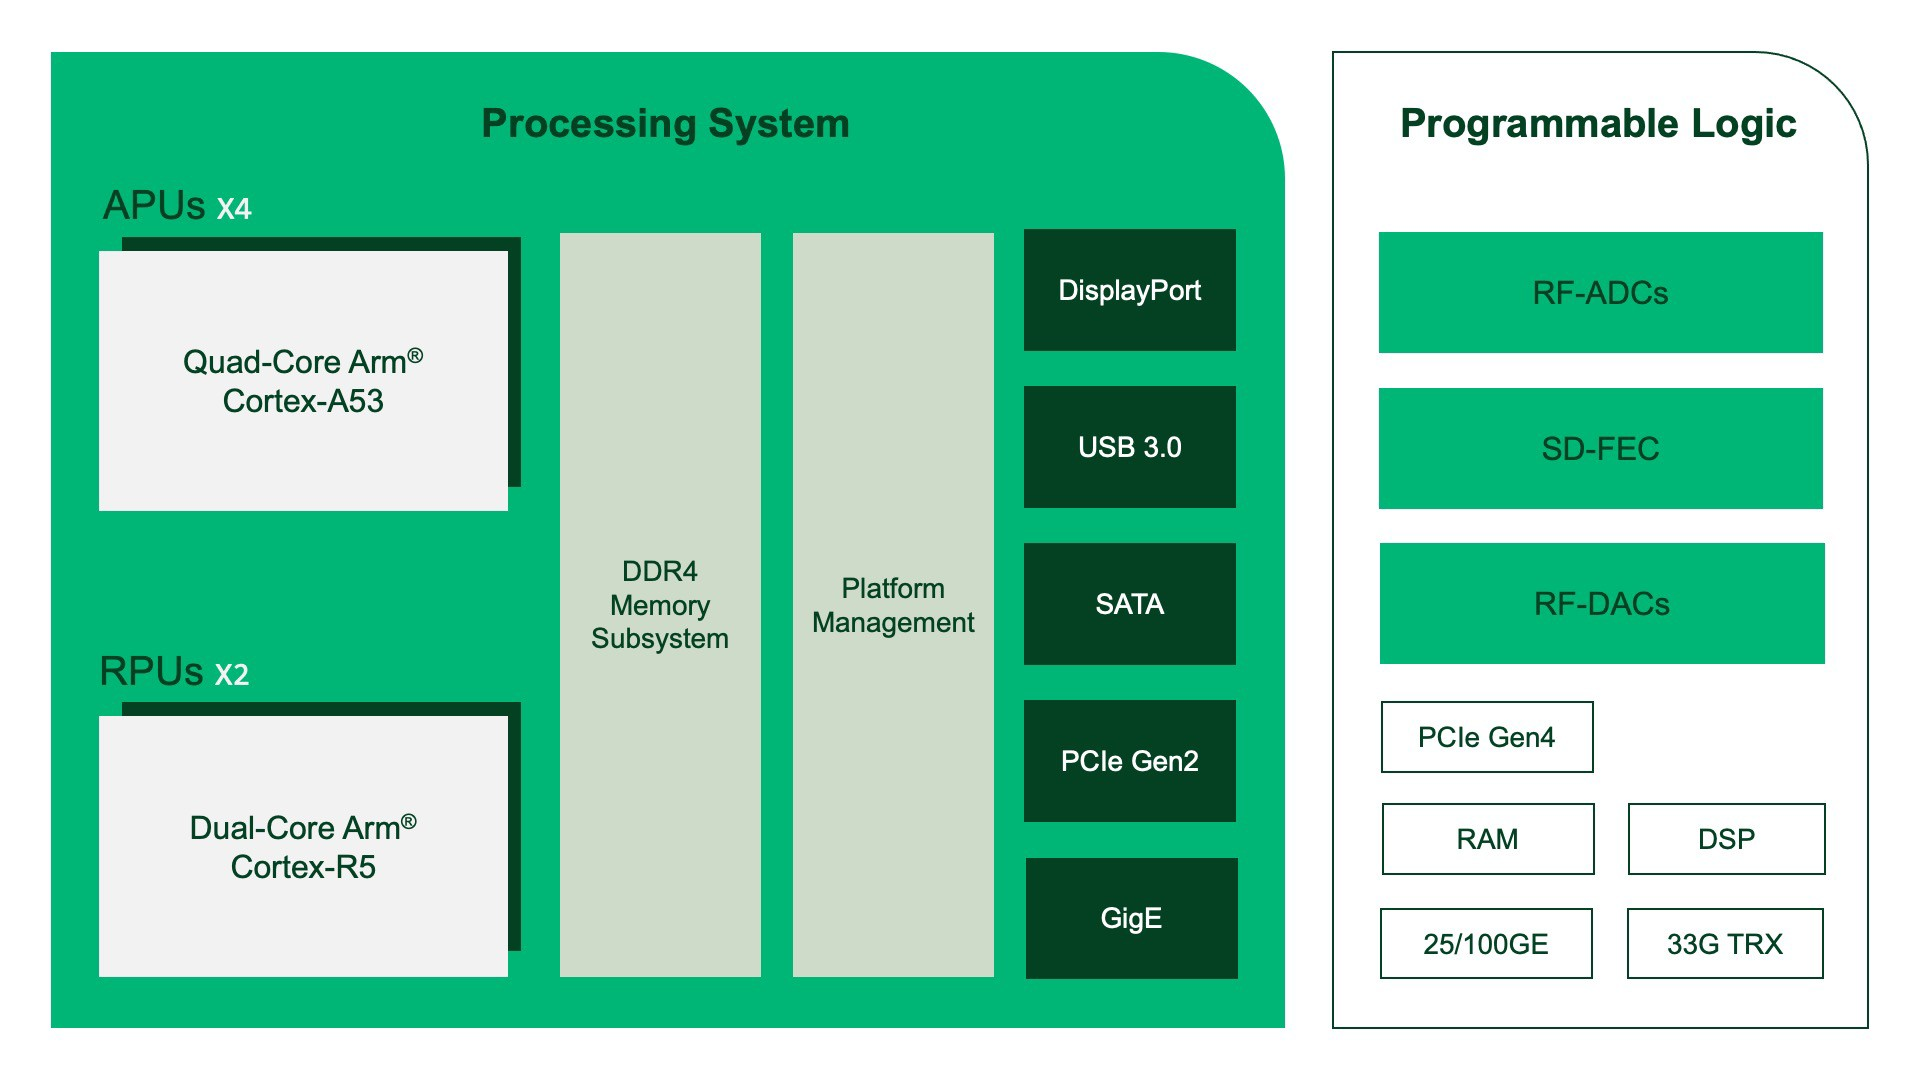 Diagram showing onboard processors and logic in the NI Ettus USRP X410